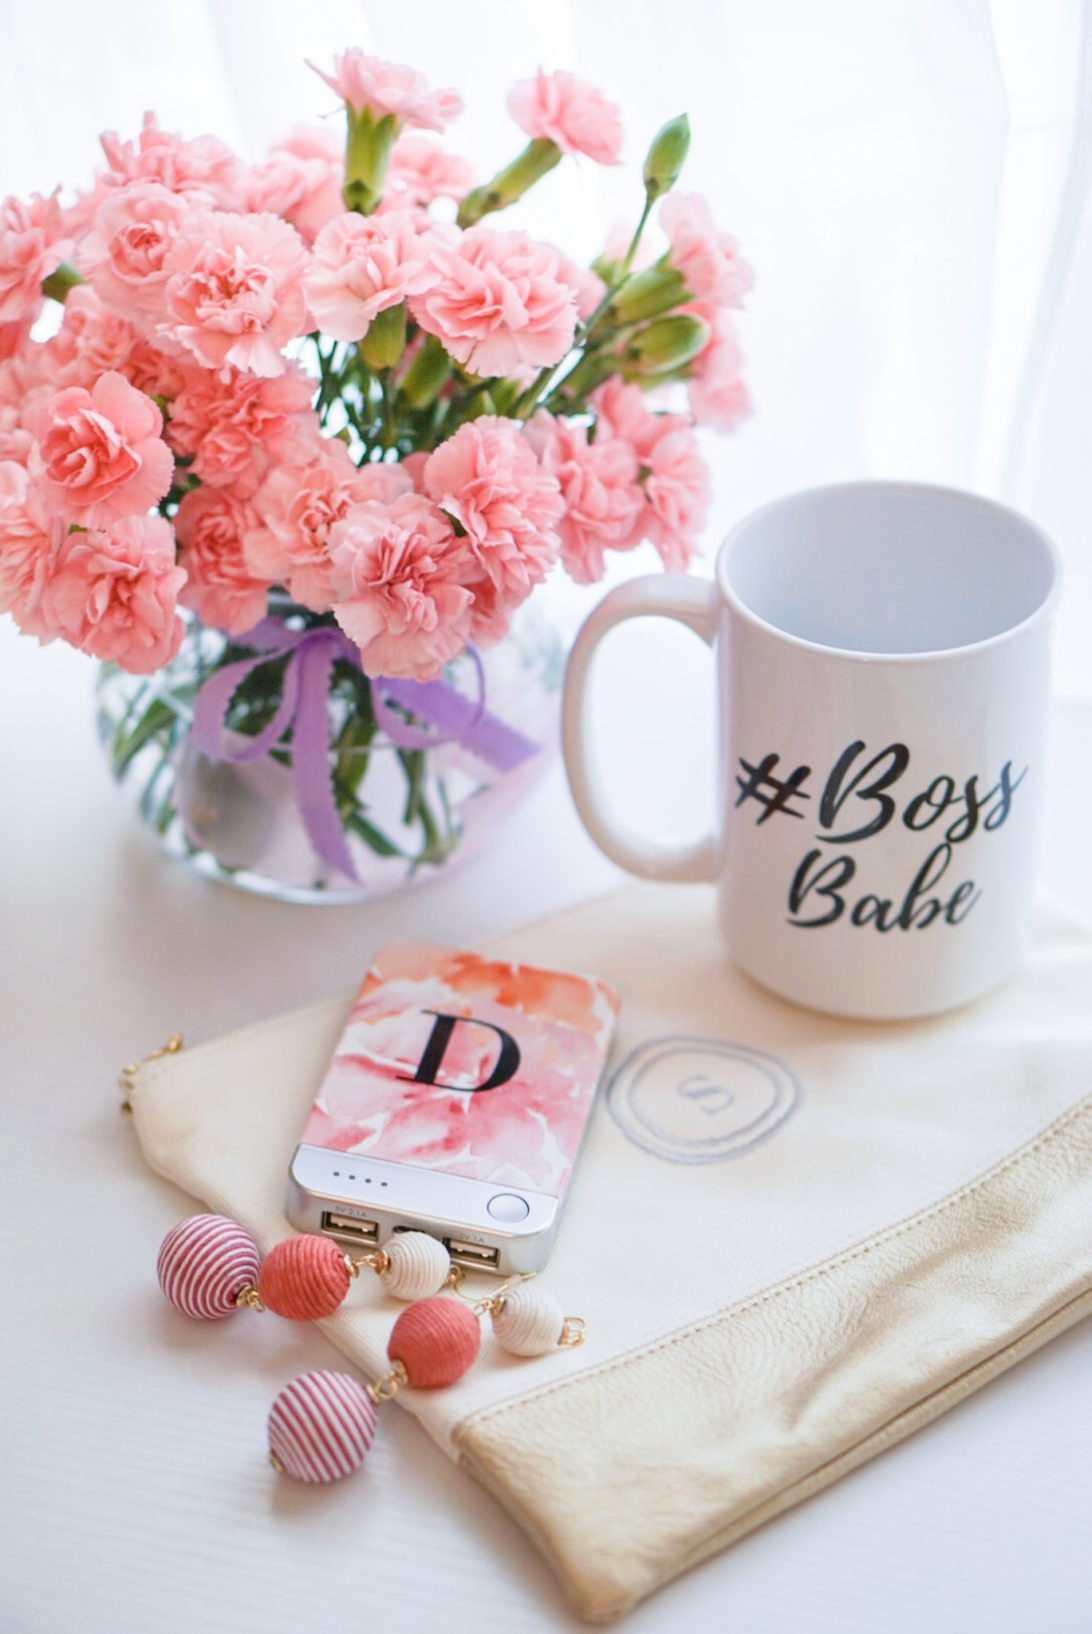 Personalized Graduation Gifts for Under $100 , shutterfly, gift ideas, initial phone charger. graduation gift ideas, gifts for her, shutterfly gift ideas